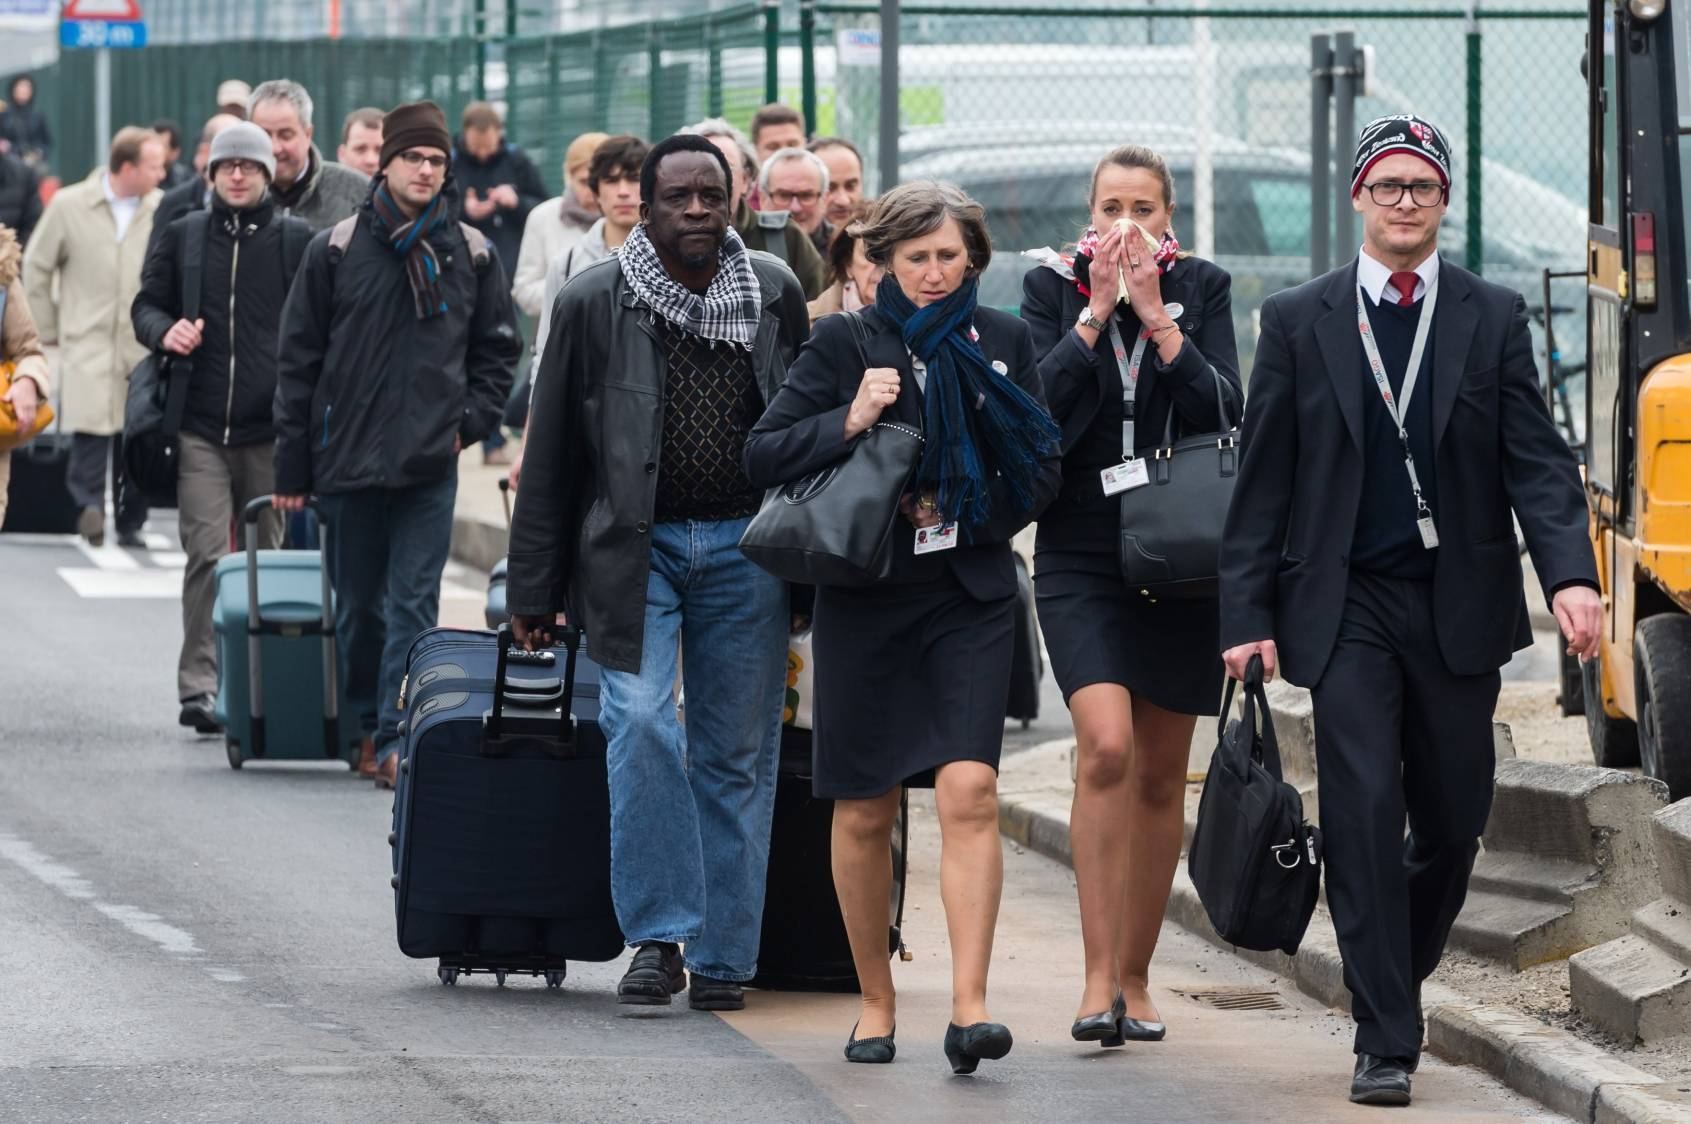 People react as they walk away from Brussels airport after explosions rocked the facility in Brussels.